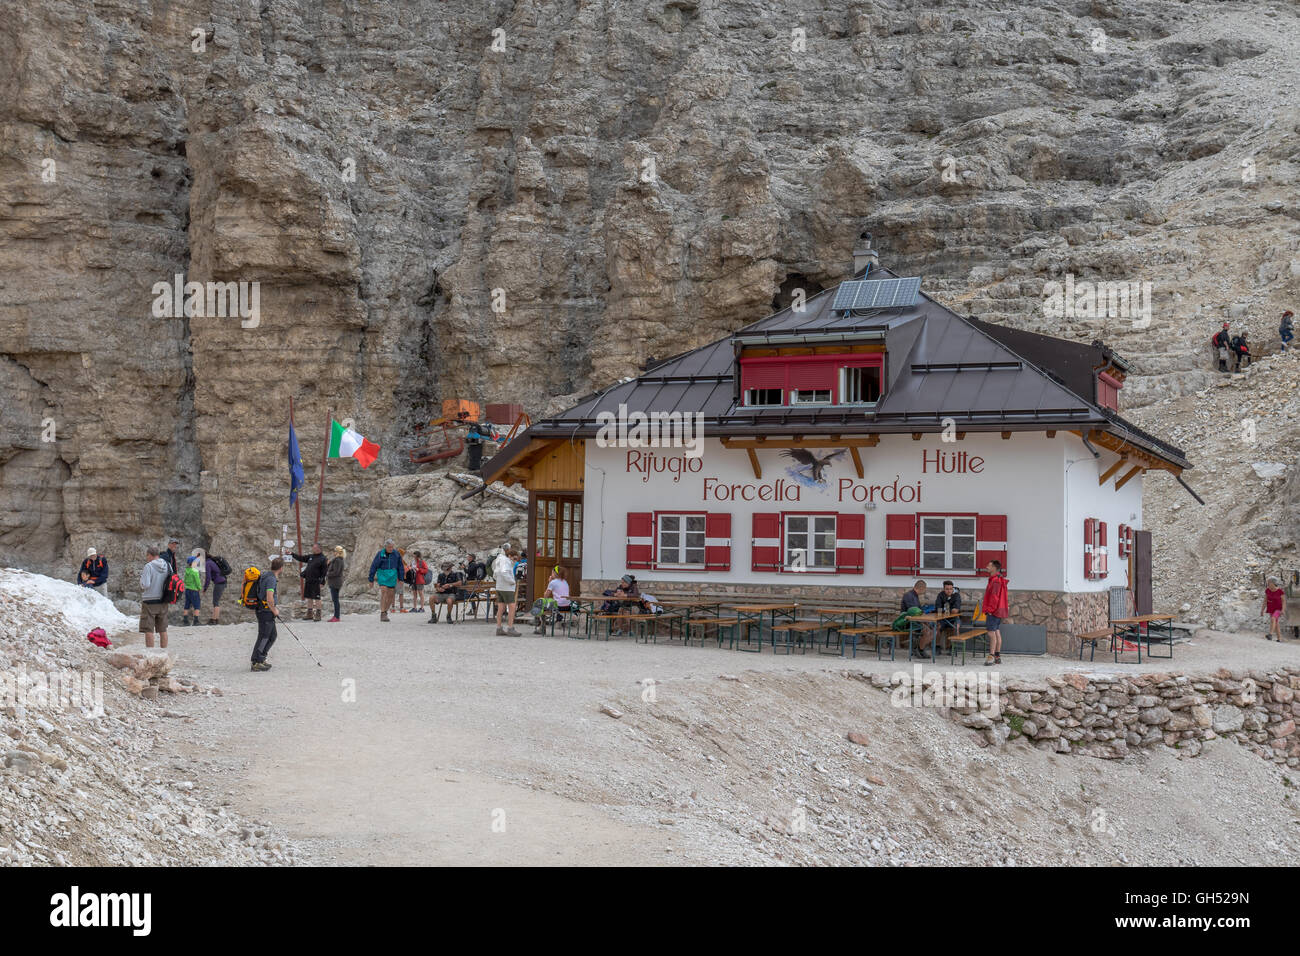 Rifugio Forcella Pordoi (2.848 m), the mountain hut on the way from Sass Pordoi to Piz Boe, Dolomites, Italy - Stock Image